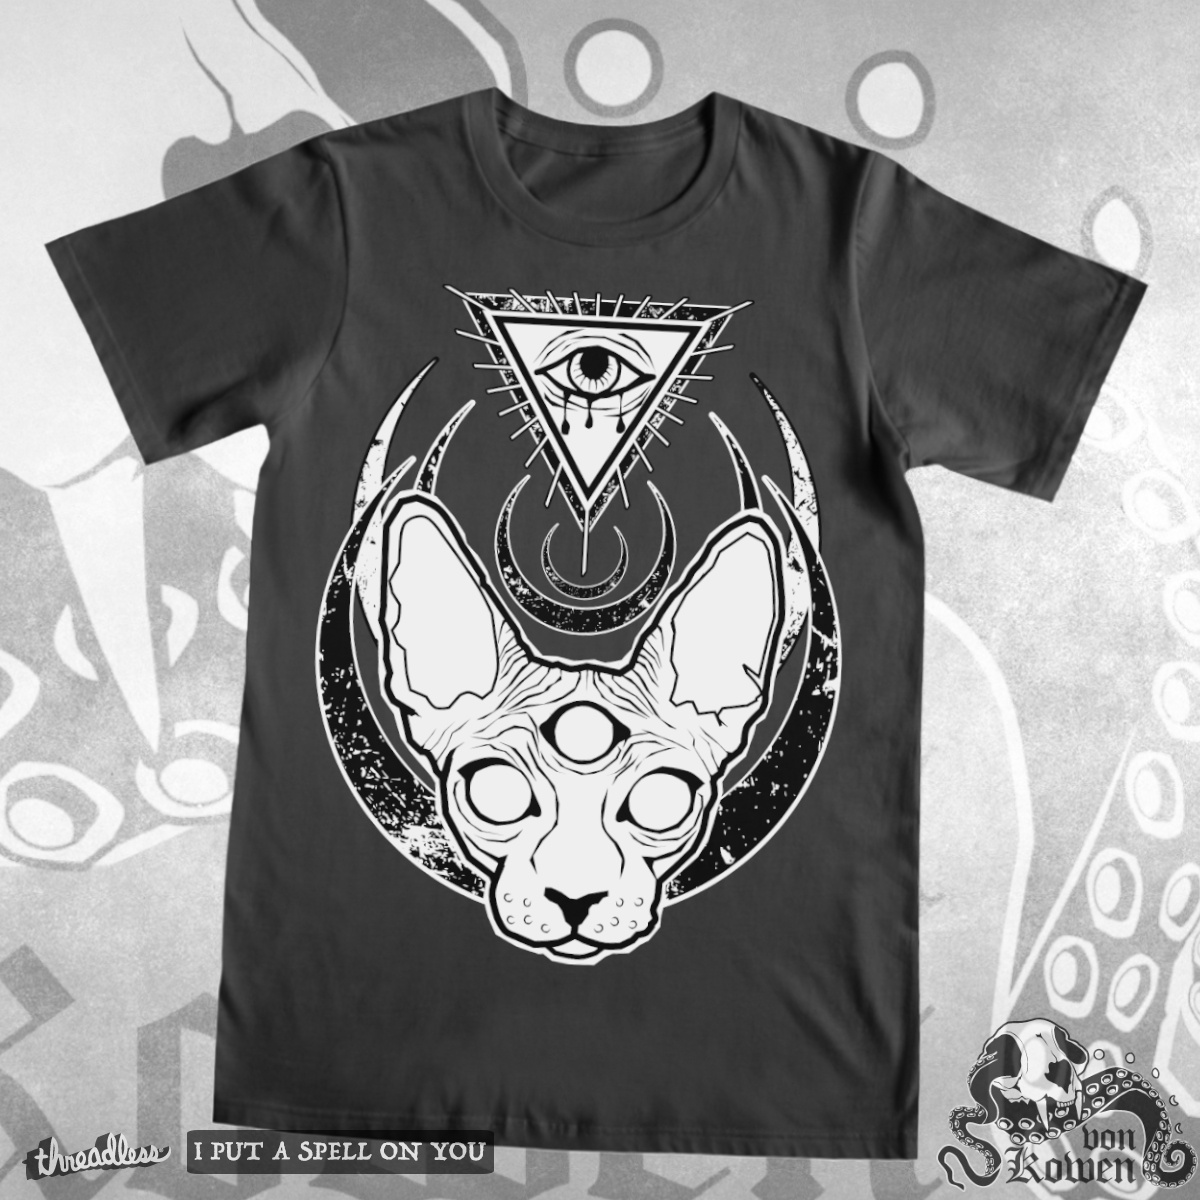 The all seeing occult sphynx, a cool t-shirt design